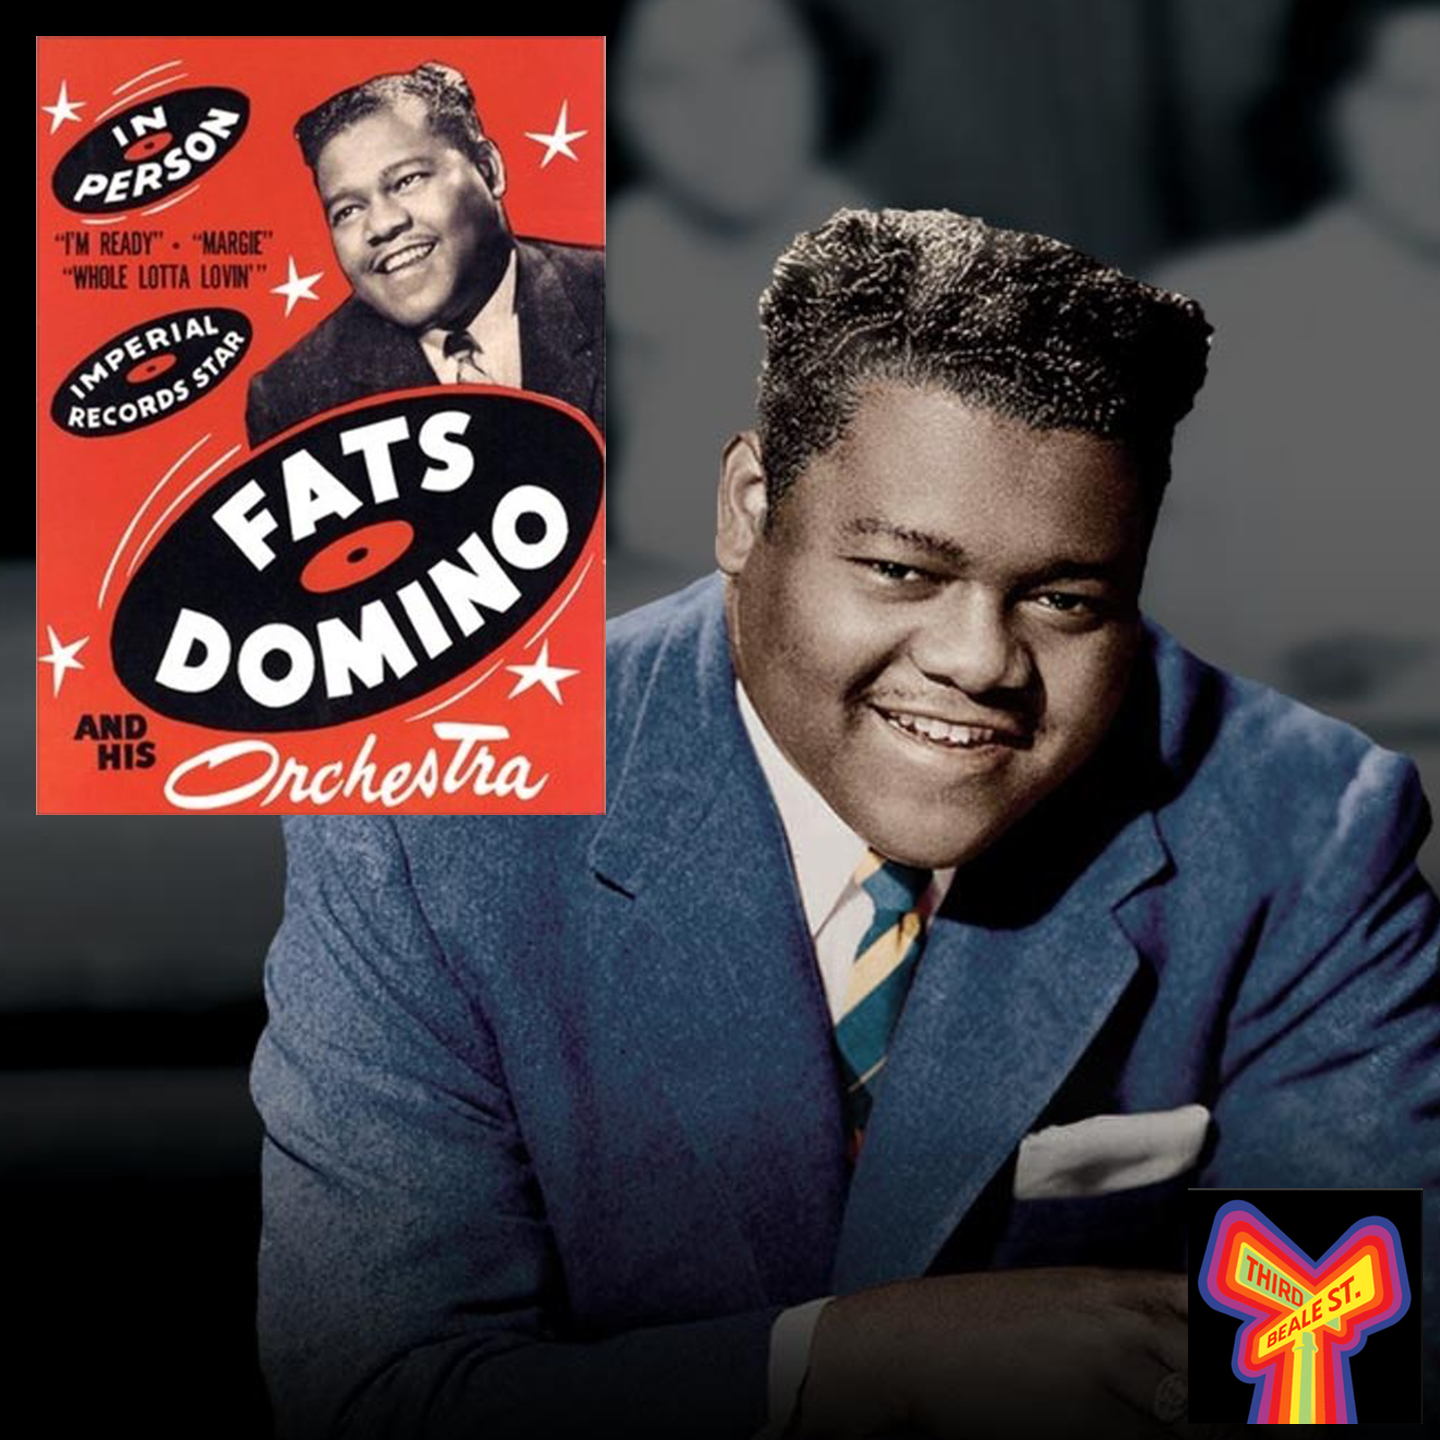 Caption: Everyone's favorite, New Orleans keyboard legend Fats Domino.